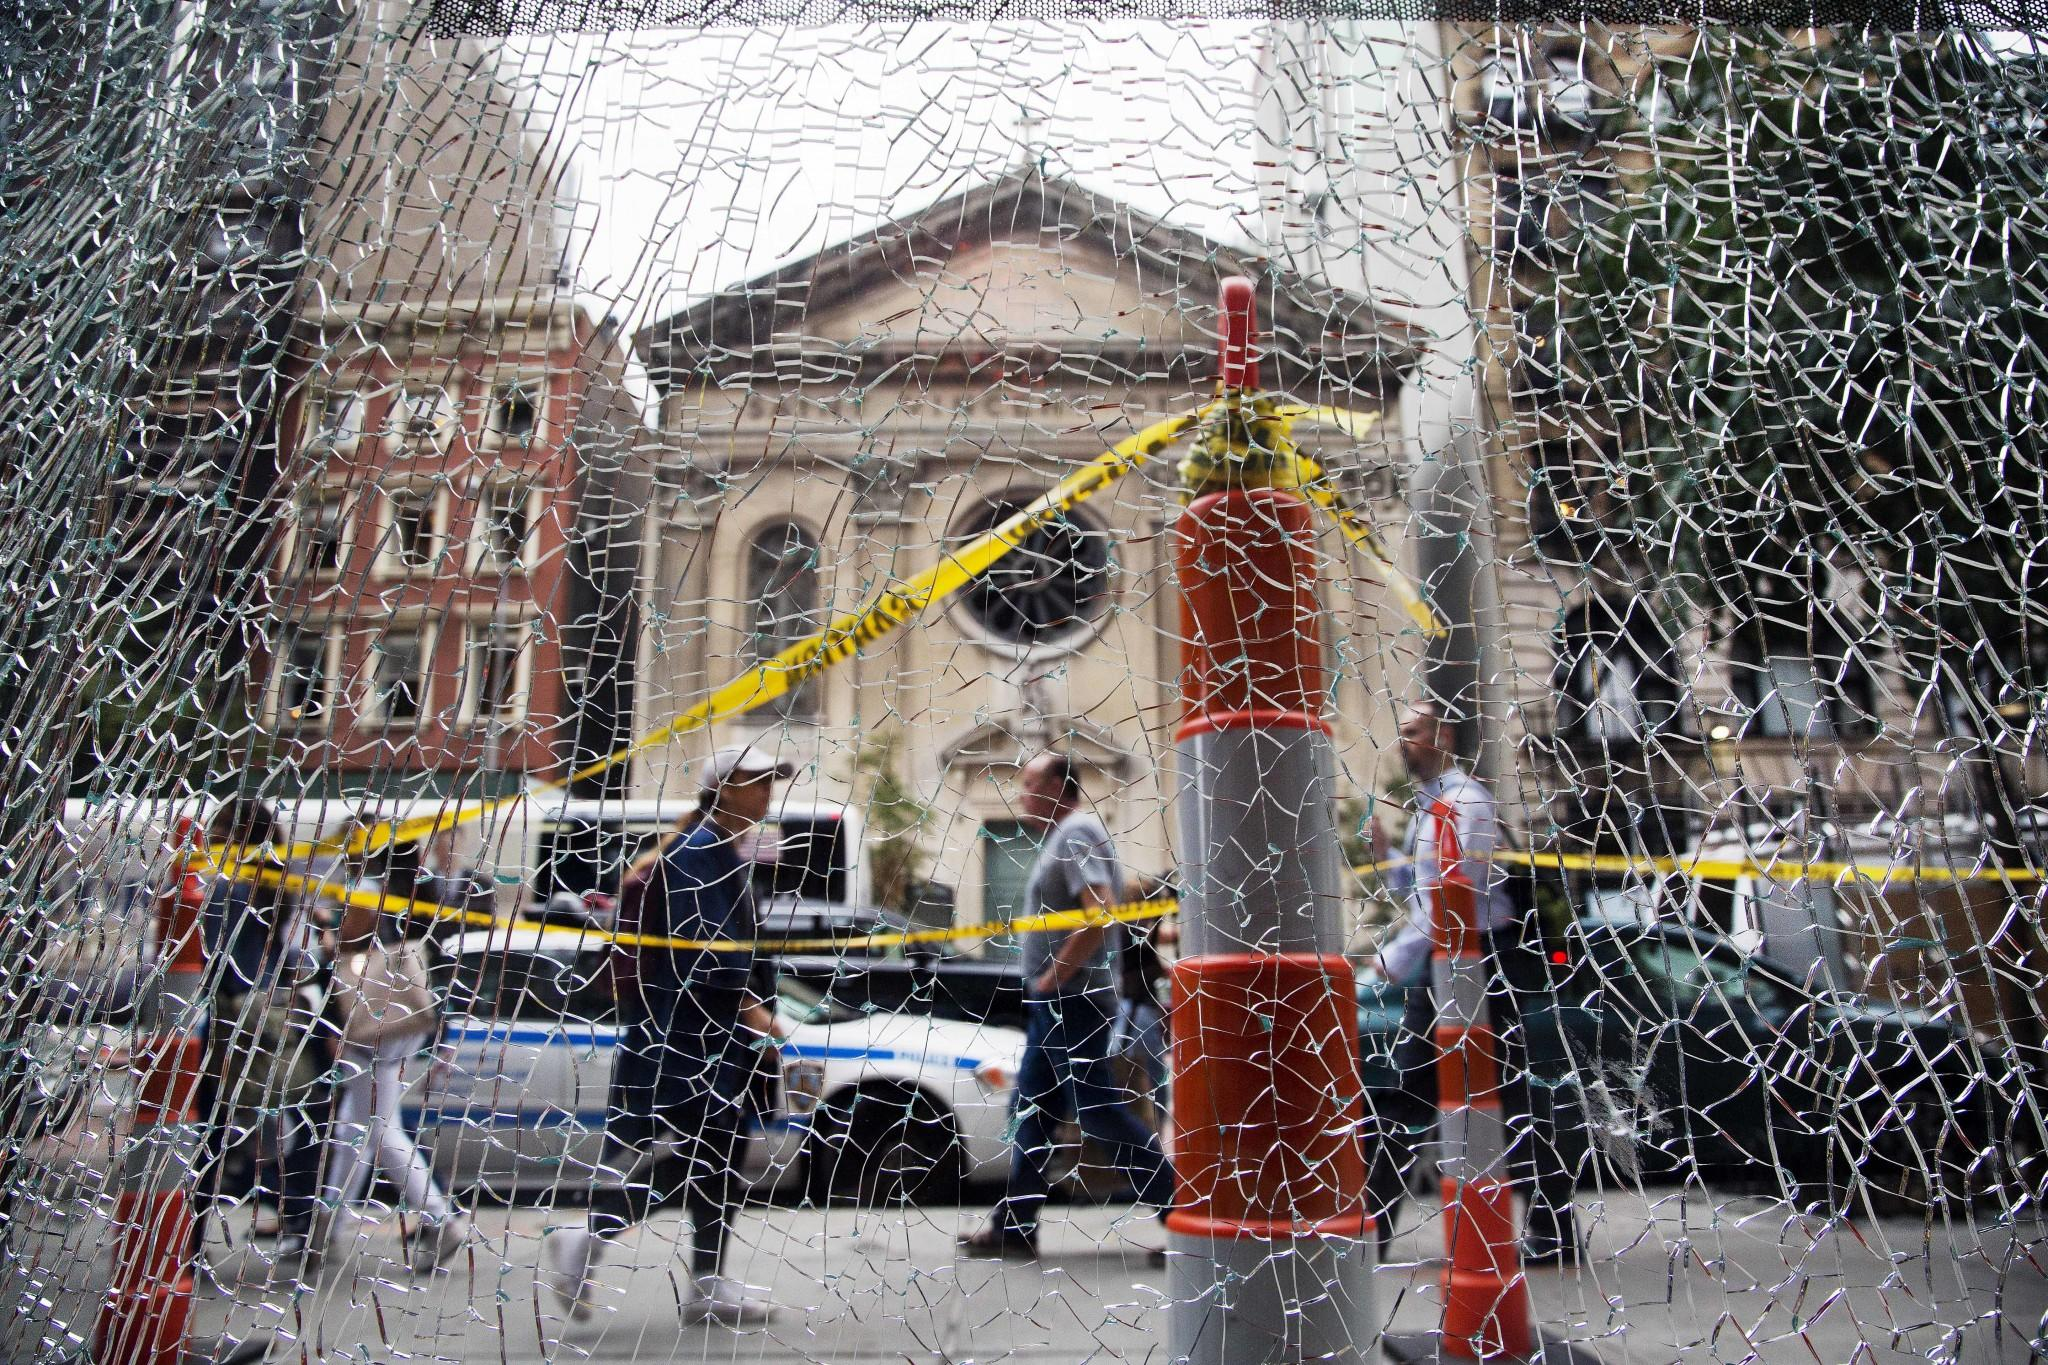 <p>New Yorkers pass a shattered storefront window on W. 23rd St. in Manhattan, Tuesday, Sept. 20, 2016, in New York. The window was hit by shrapnel from the bomb that exploded across the street Saturday evening. An Afghan immigrant wanted in the bombings was captured Monday after being wounded in a gun battle with police. (AP Photo/Mark Lennihan) </p>